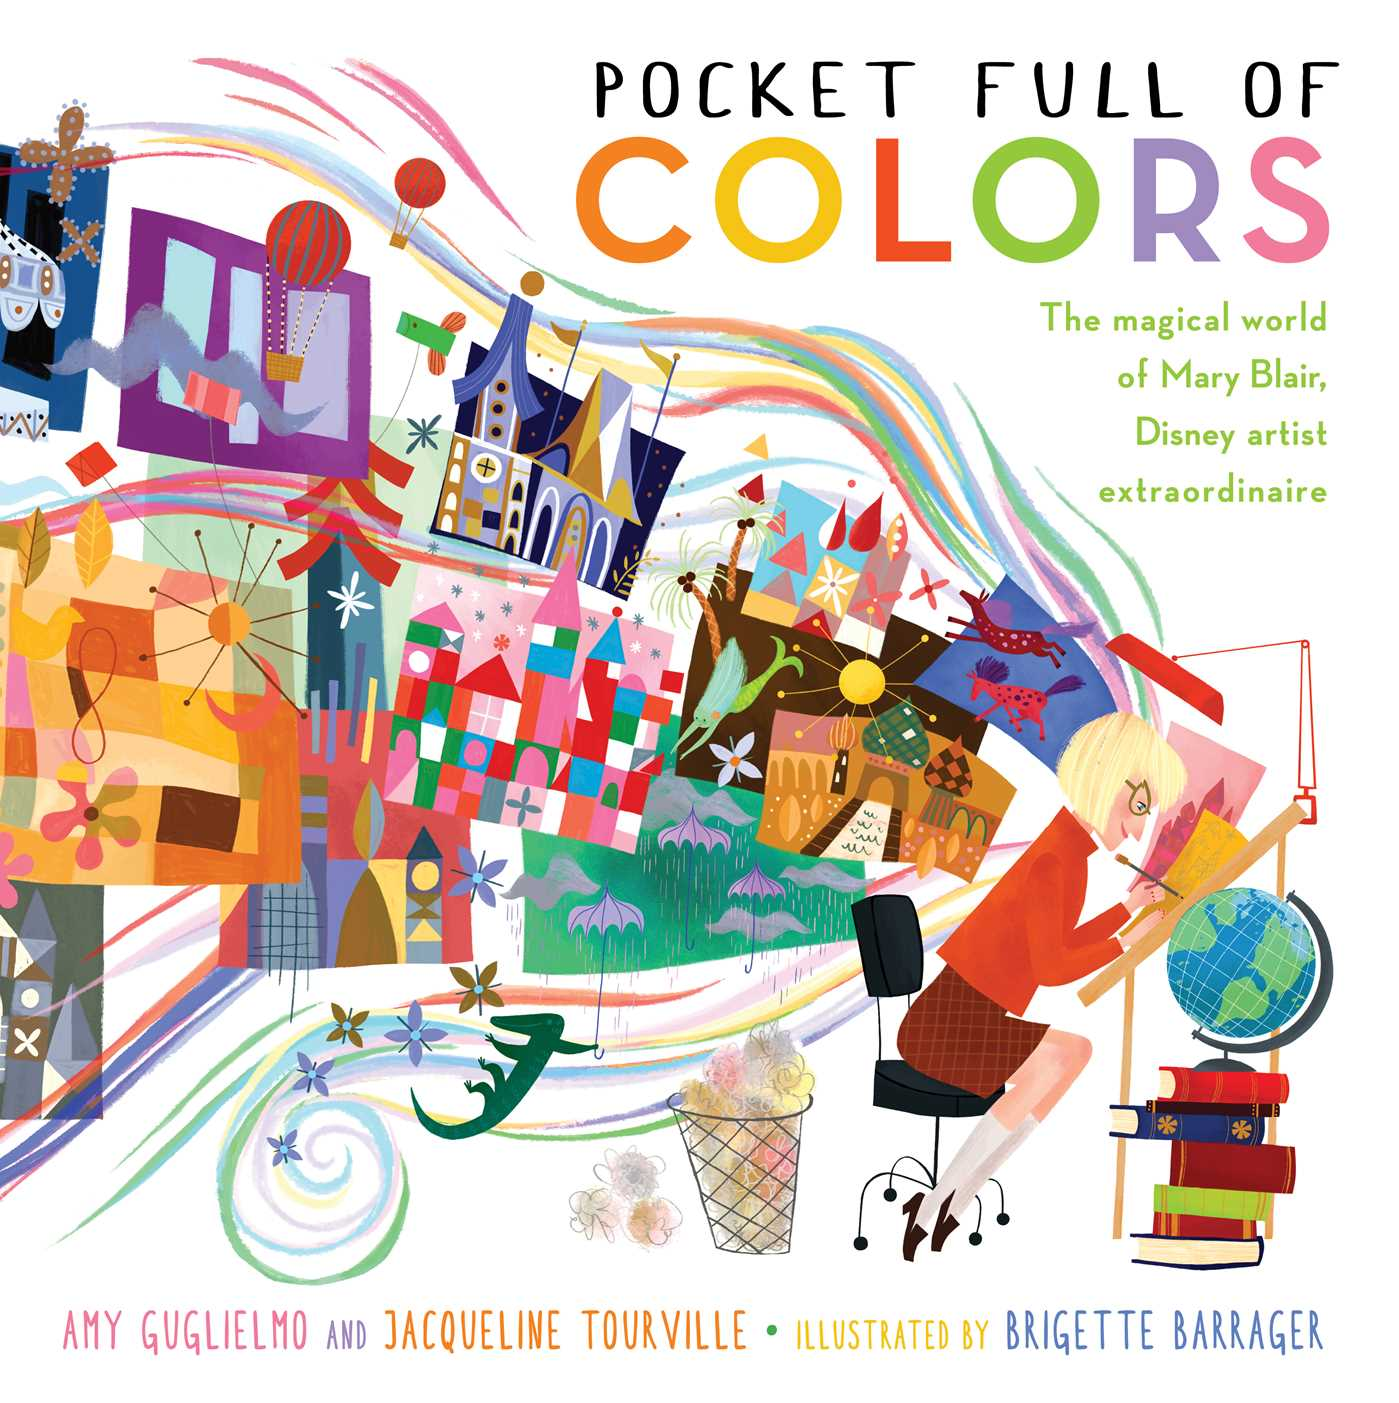 Pocket full of colors 9781481461320 hr